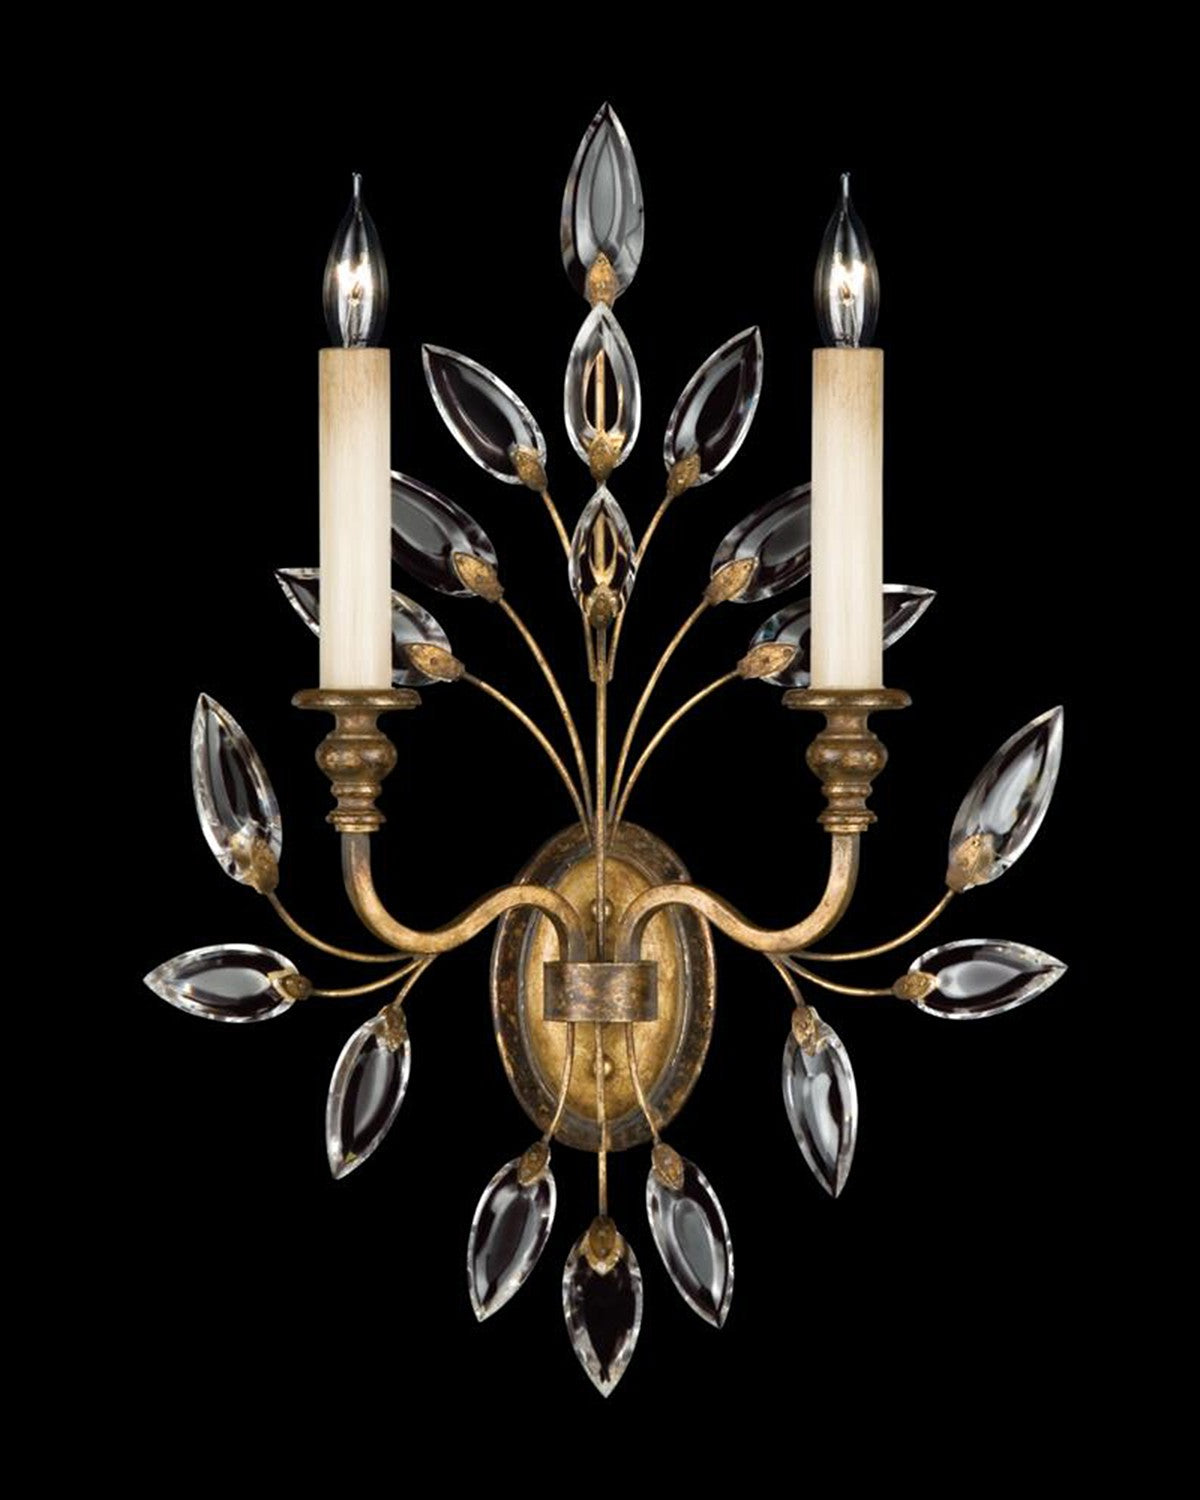 DIARA WALL SCONCES ANGIE HOMES